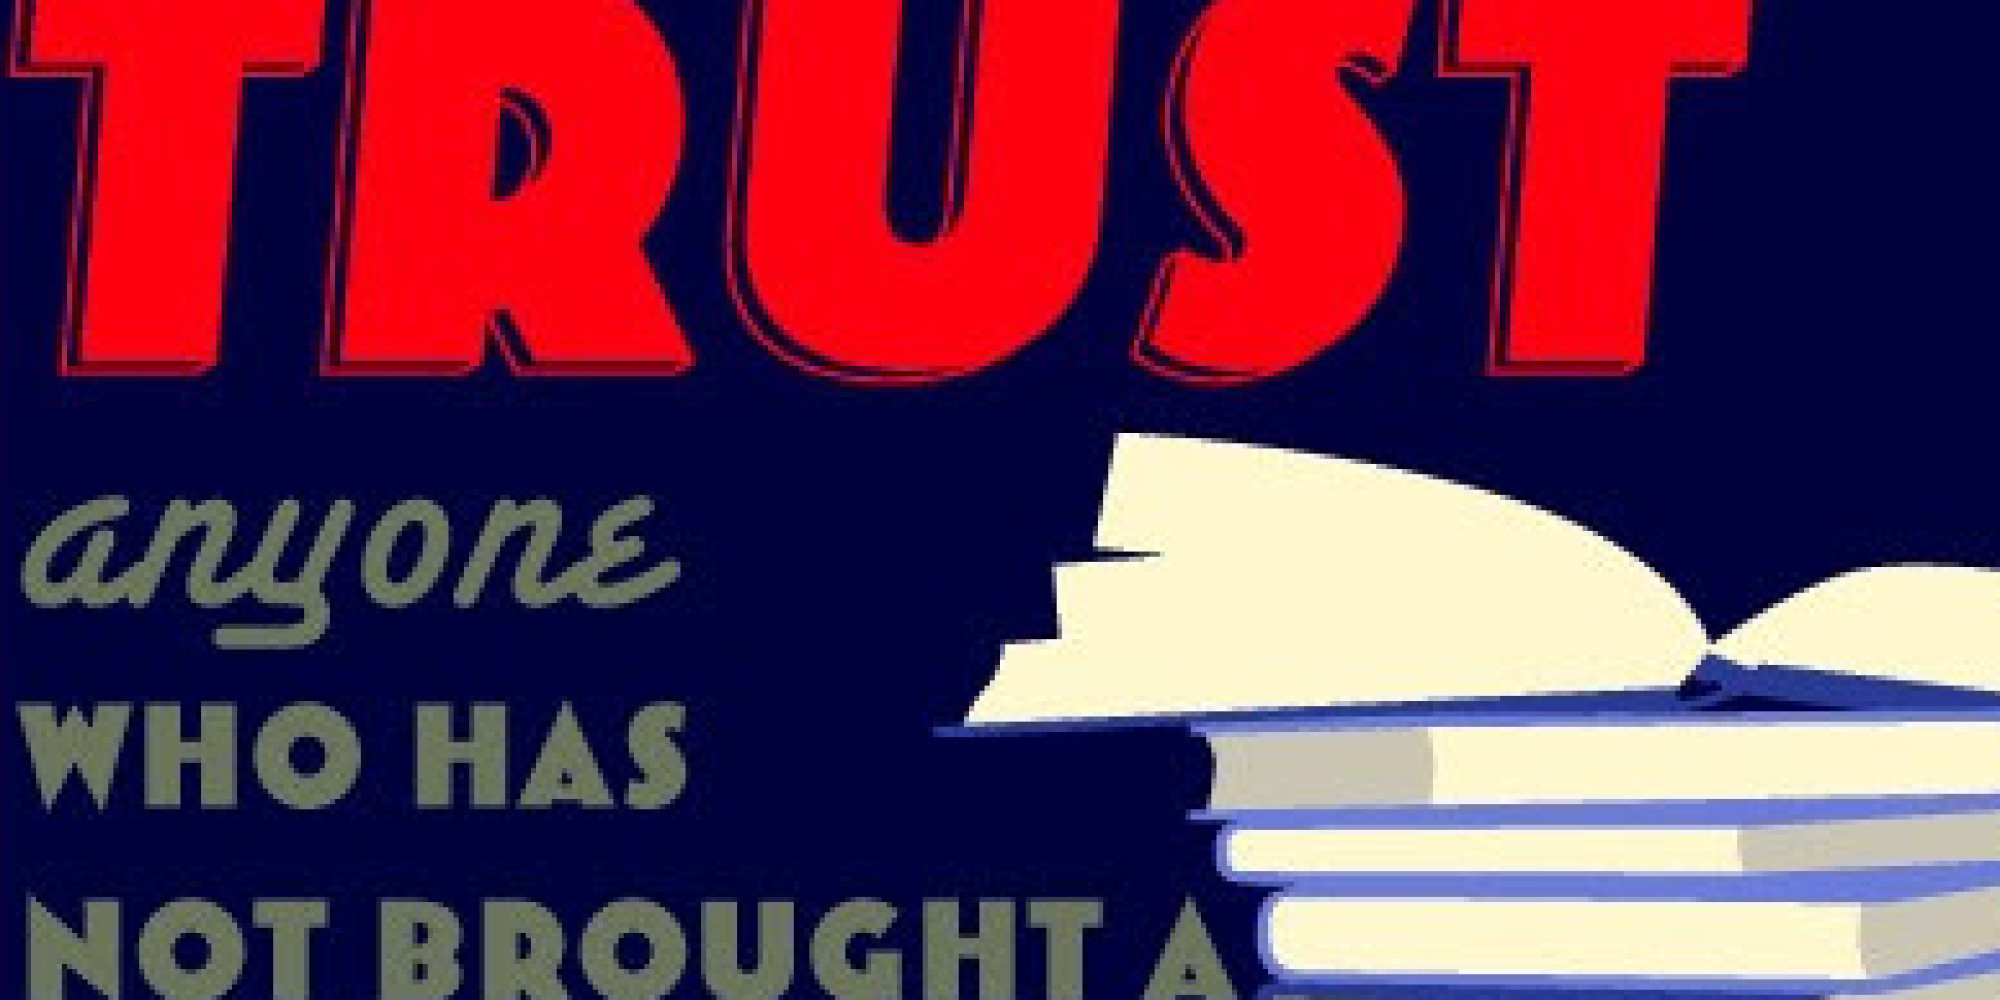 Most Popular Quotes On Goodreads In 2013 | HuffPost